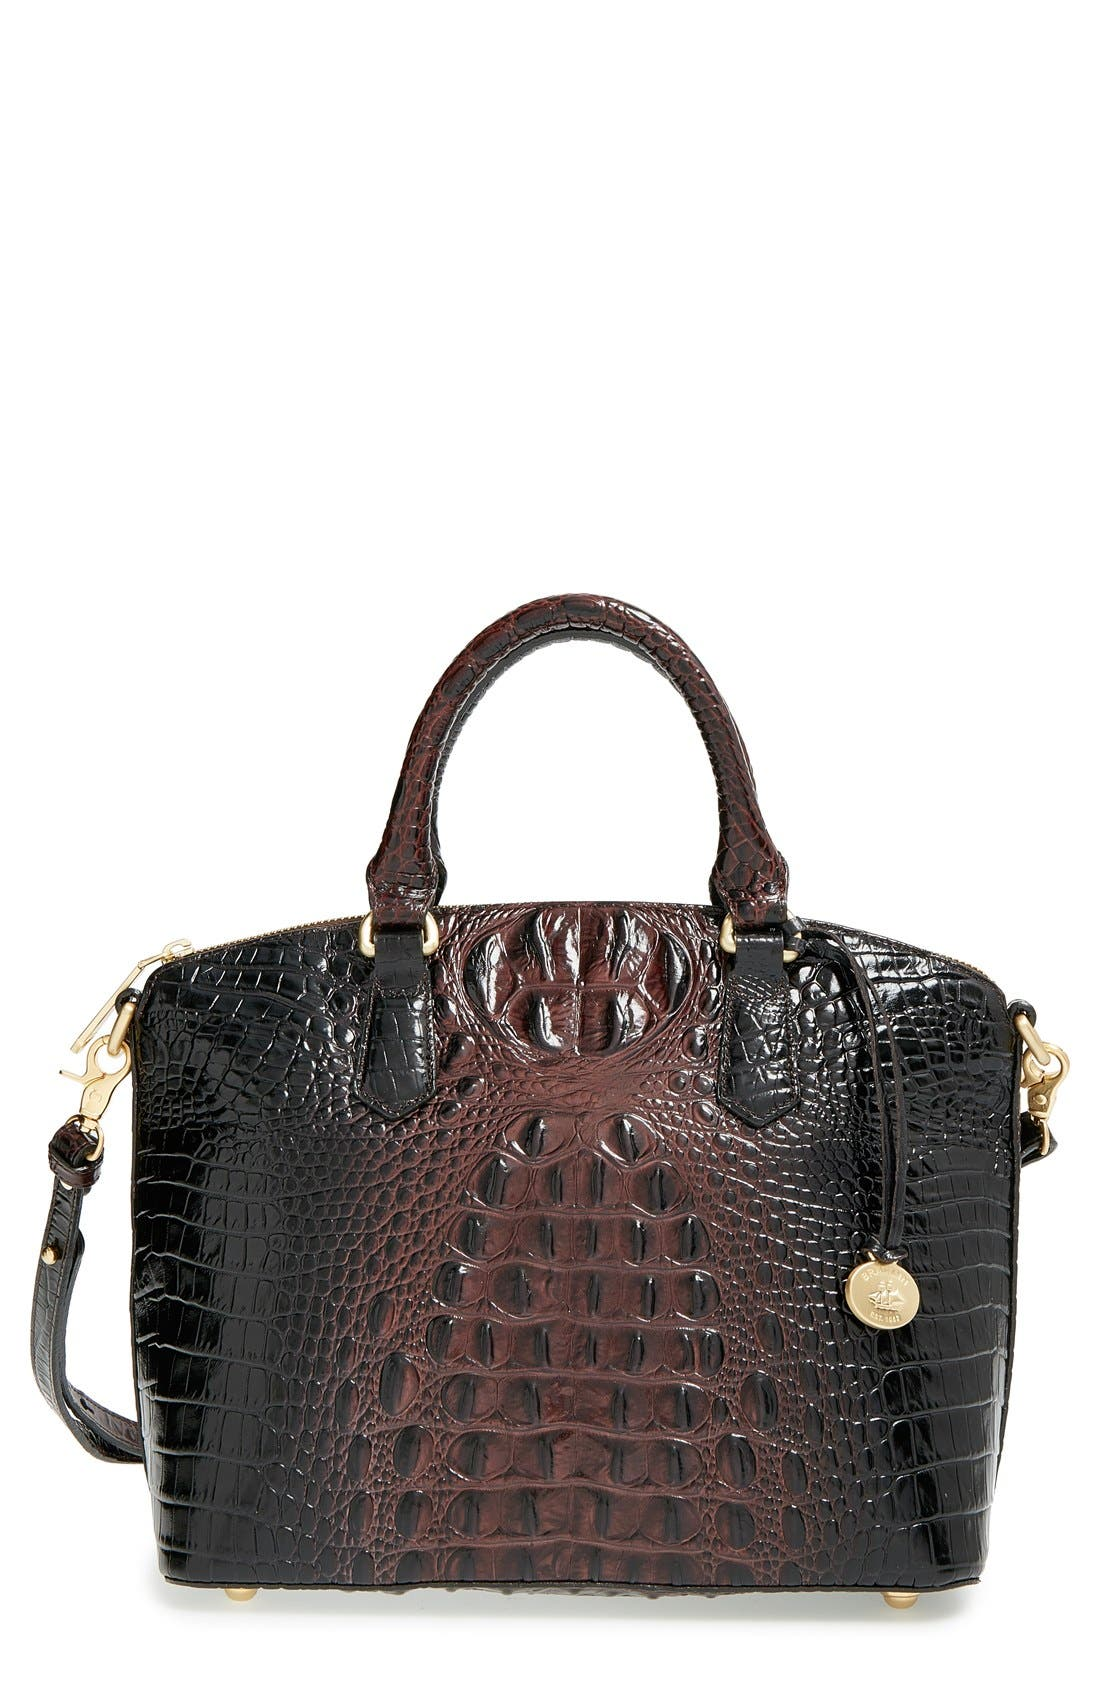 'Medium Duxbury' Croc Embossed Leather Satchel,                             Main thumbnail 13, color,